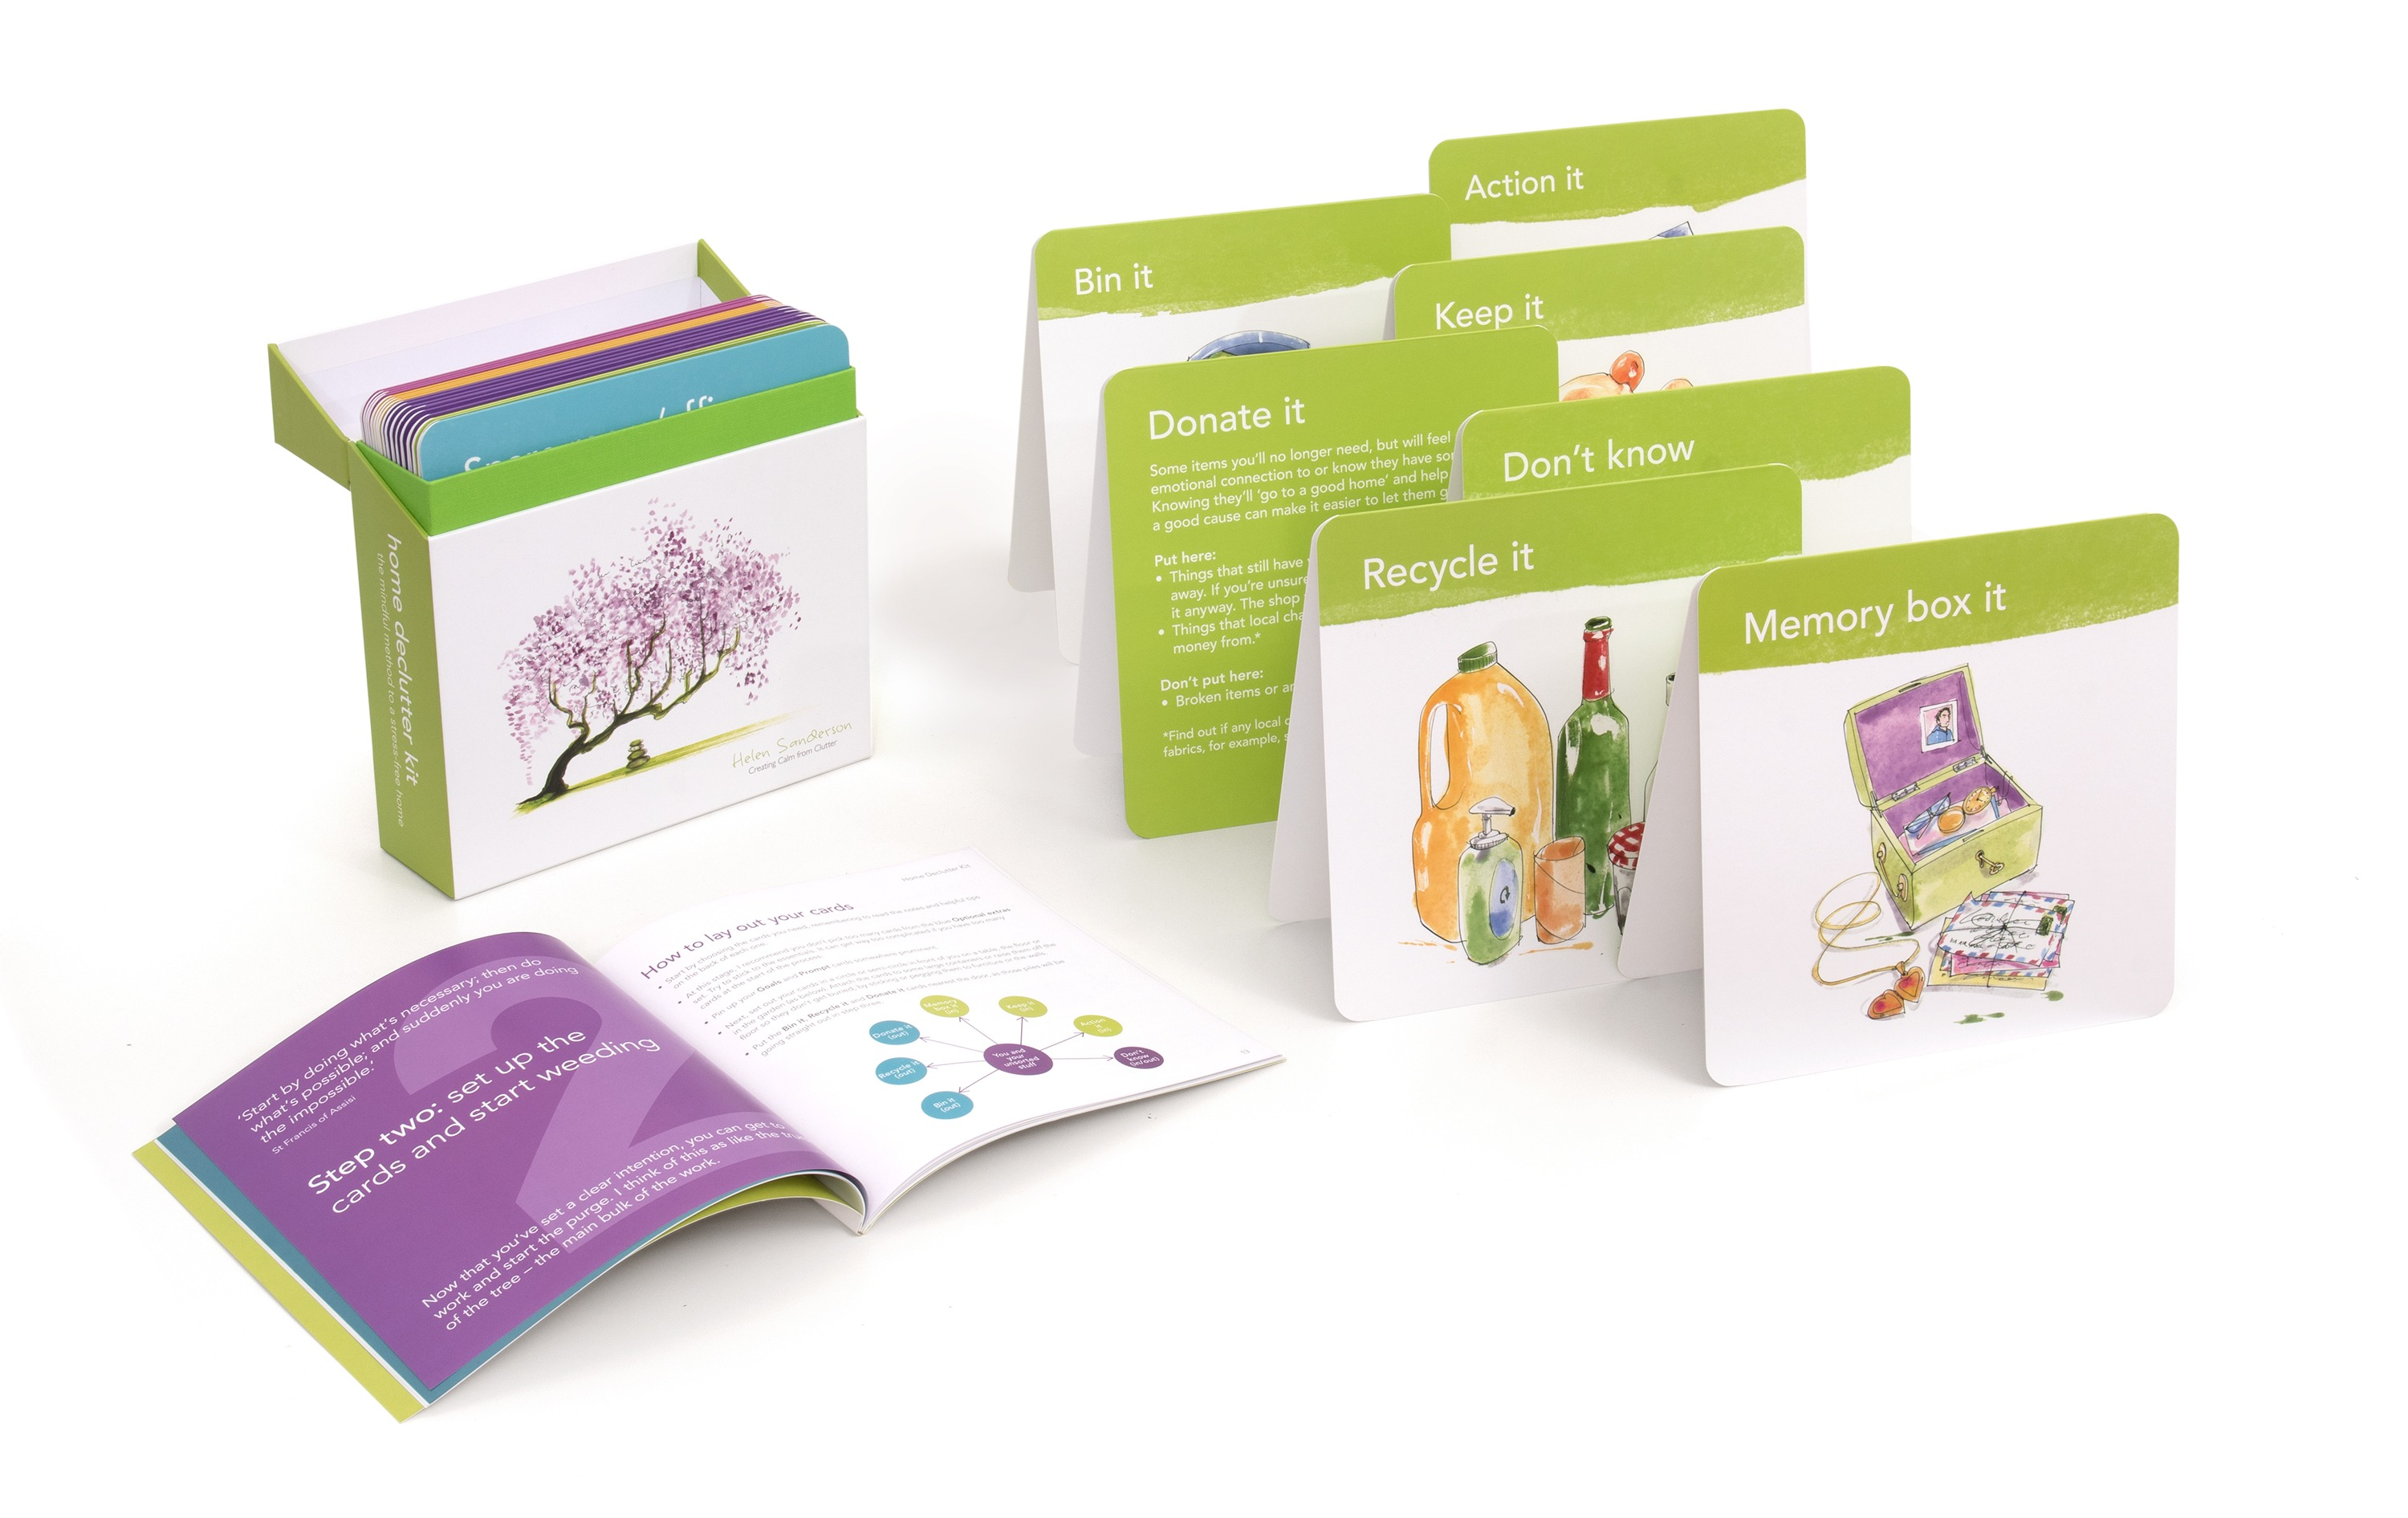 Packed with decluttering tips, the home declutter kit is the ultimate decluttering resource.